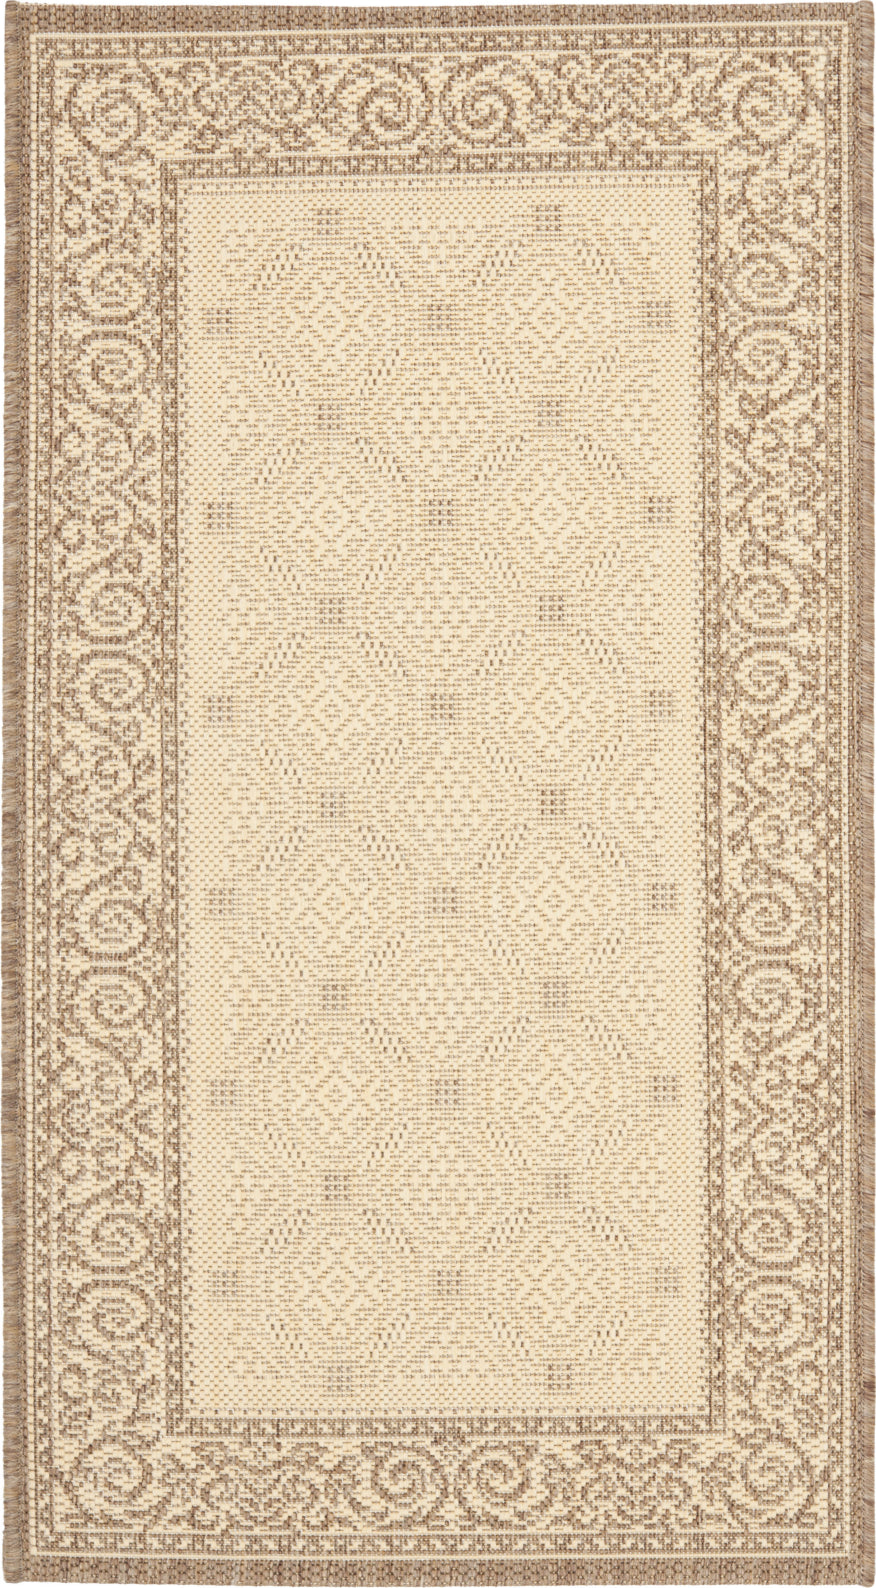 Safavieh Courtyard CY1502 Natural/Brown Area Rug main image